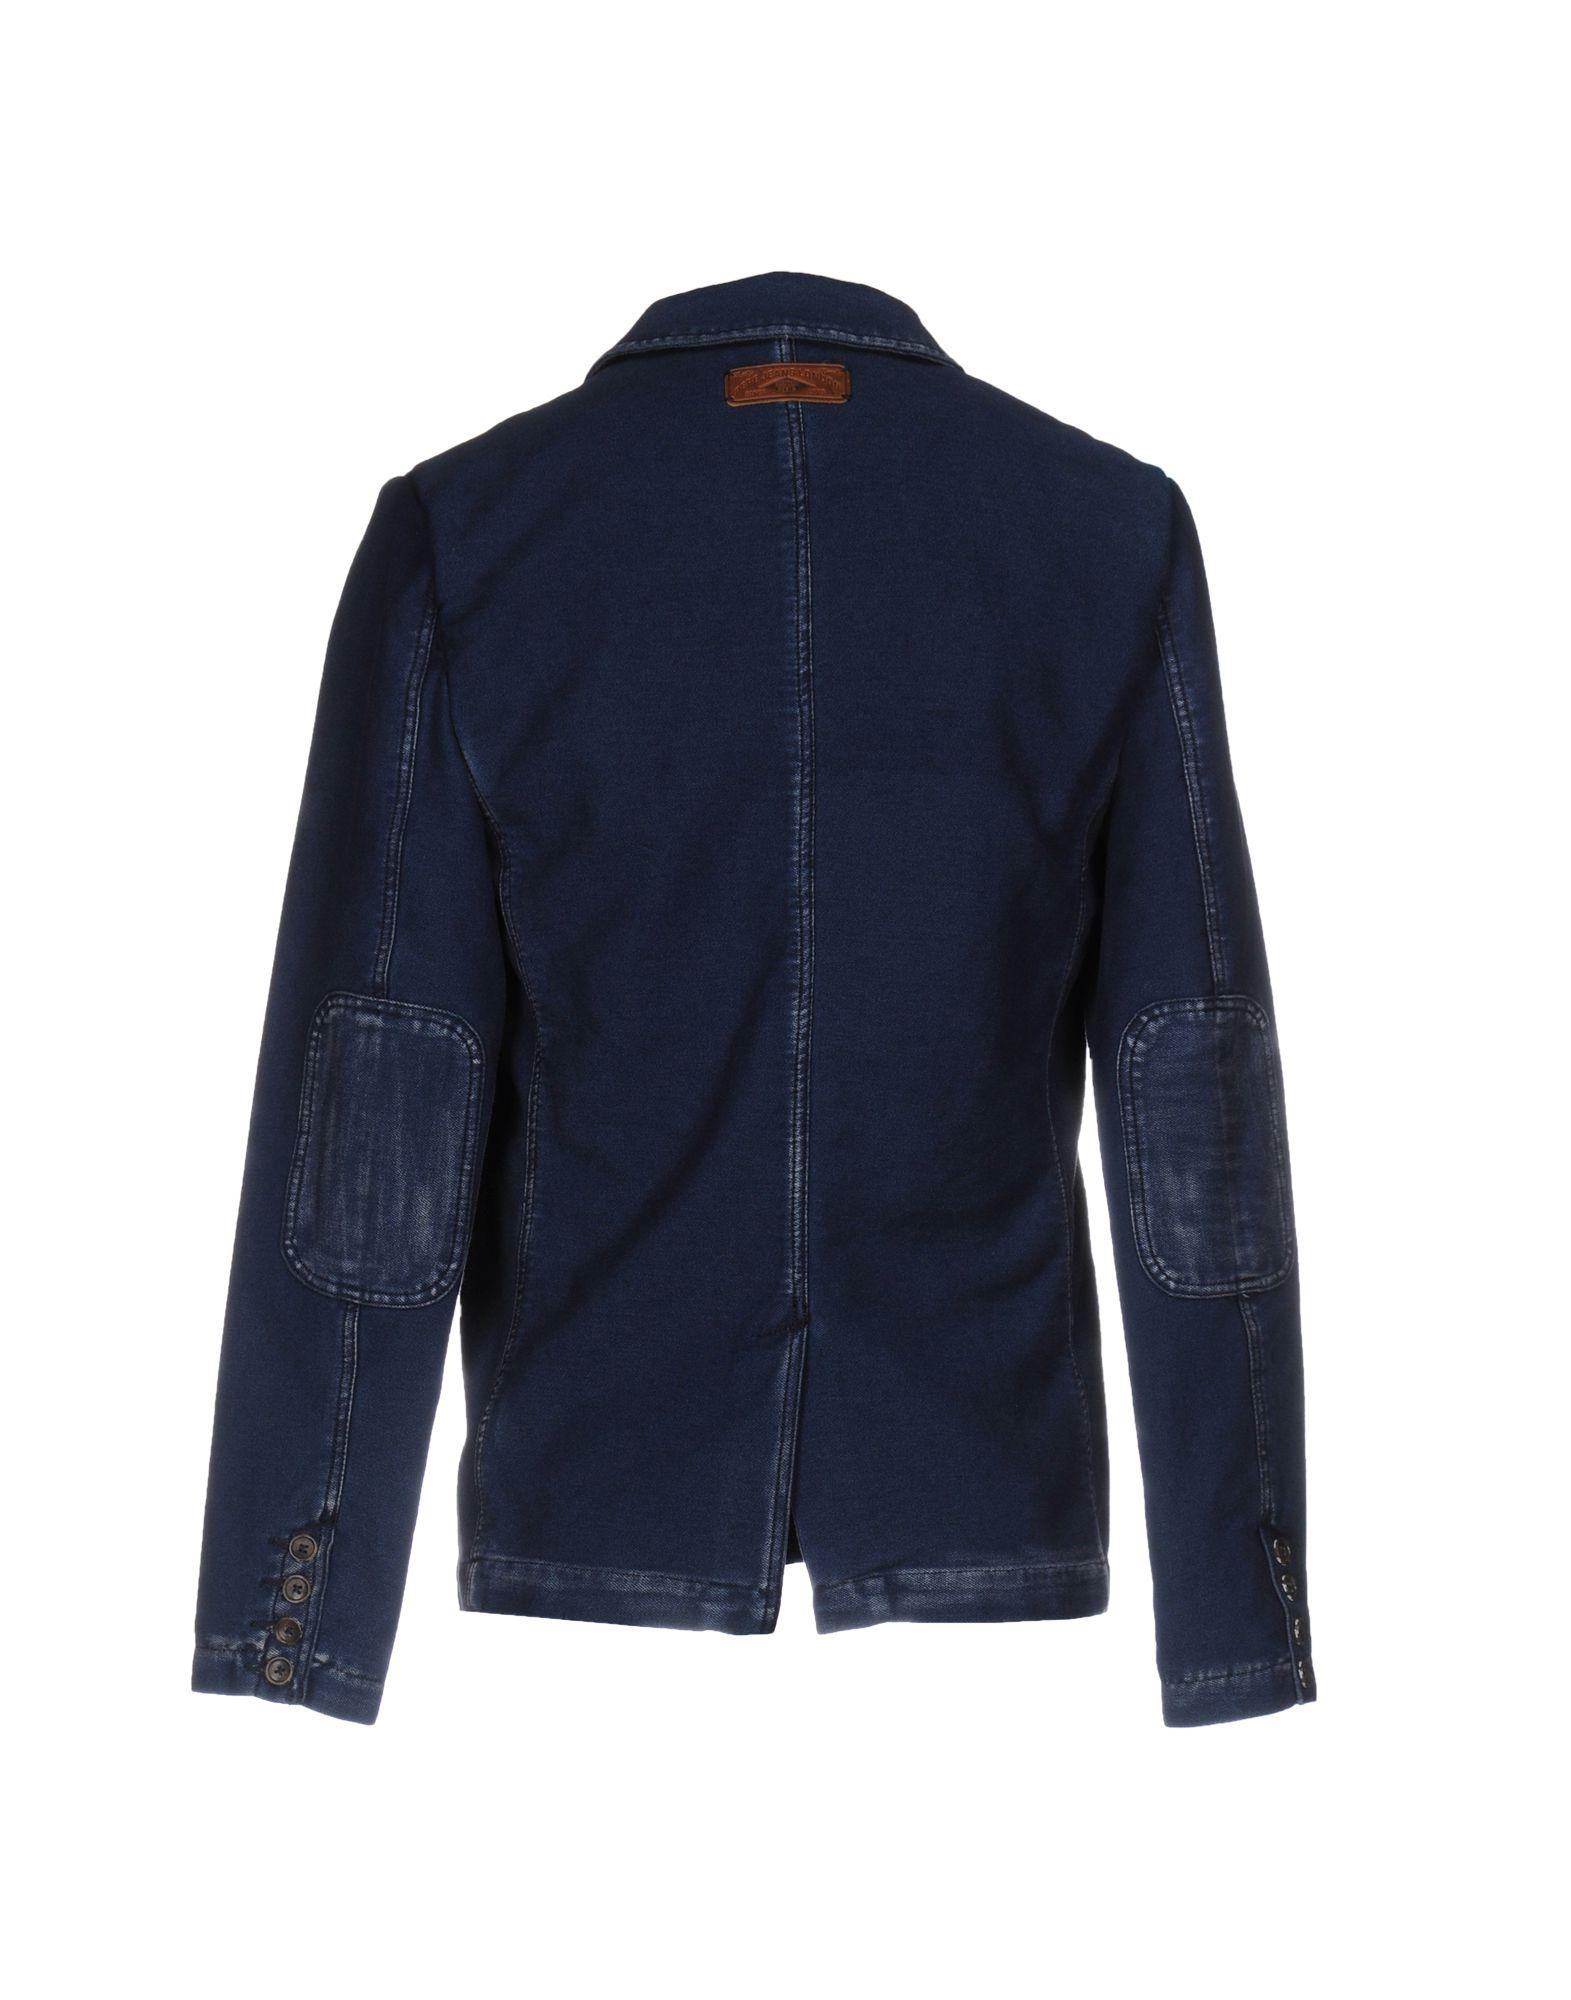 Pepe Jeans Synthetic Blazer in Blue for Men